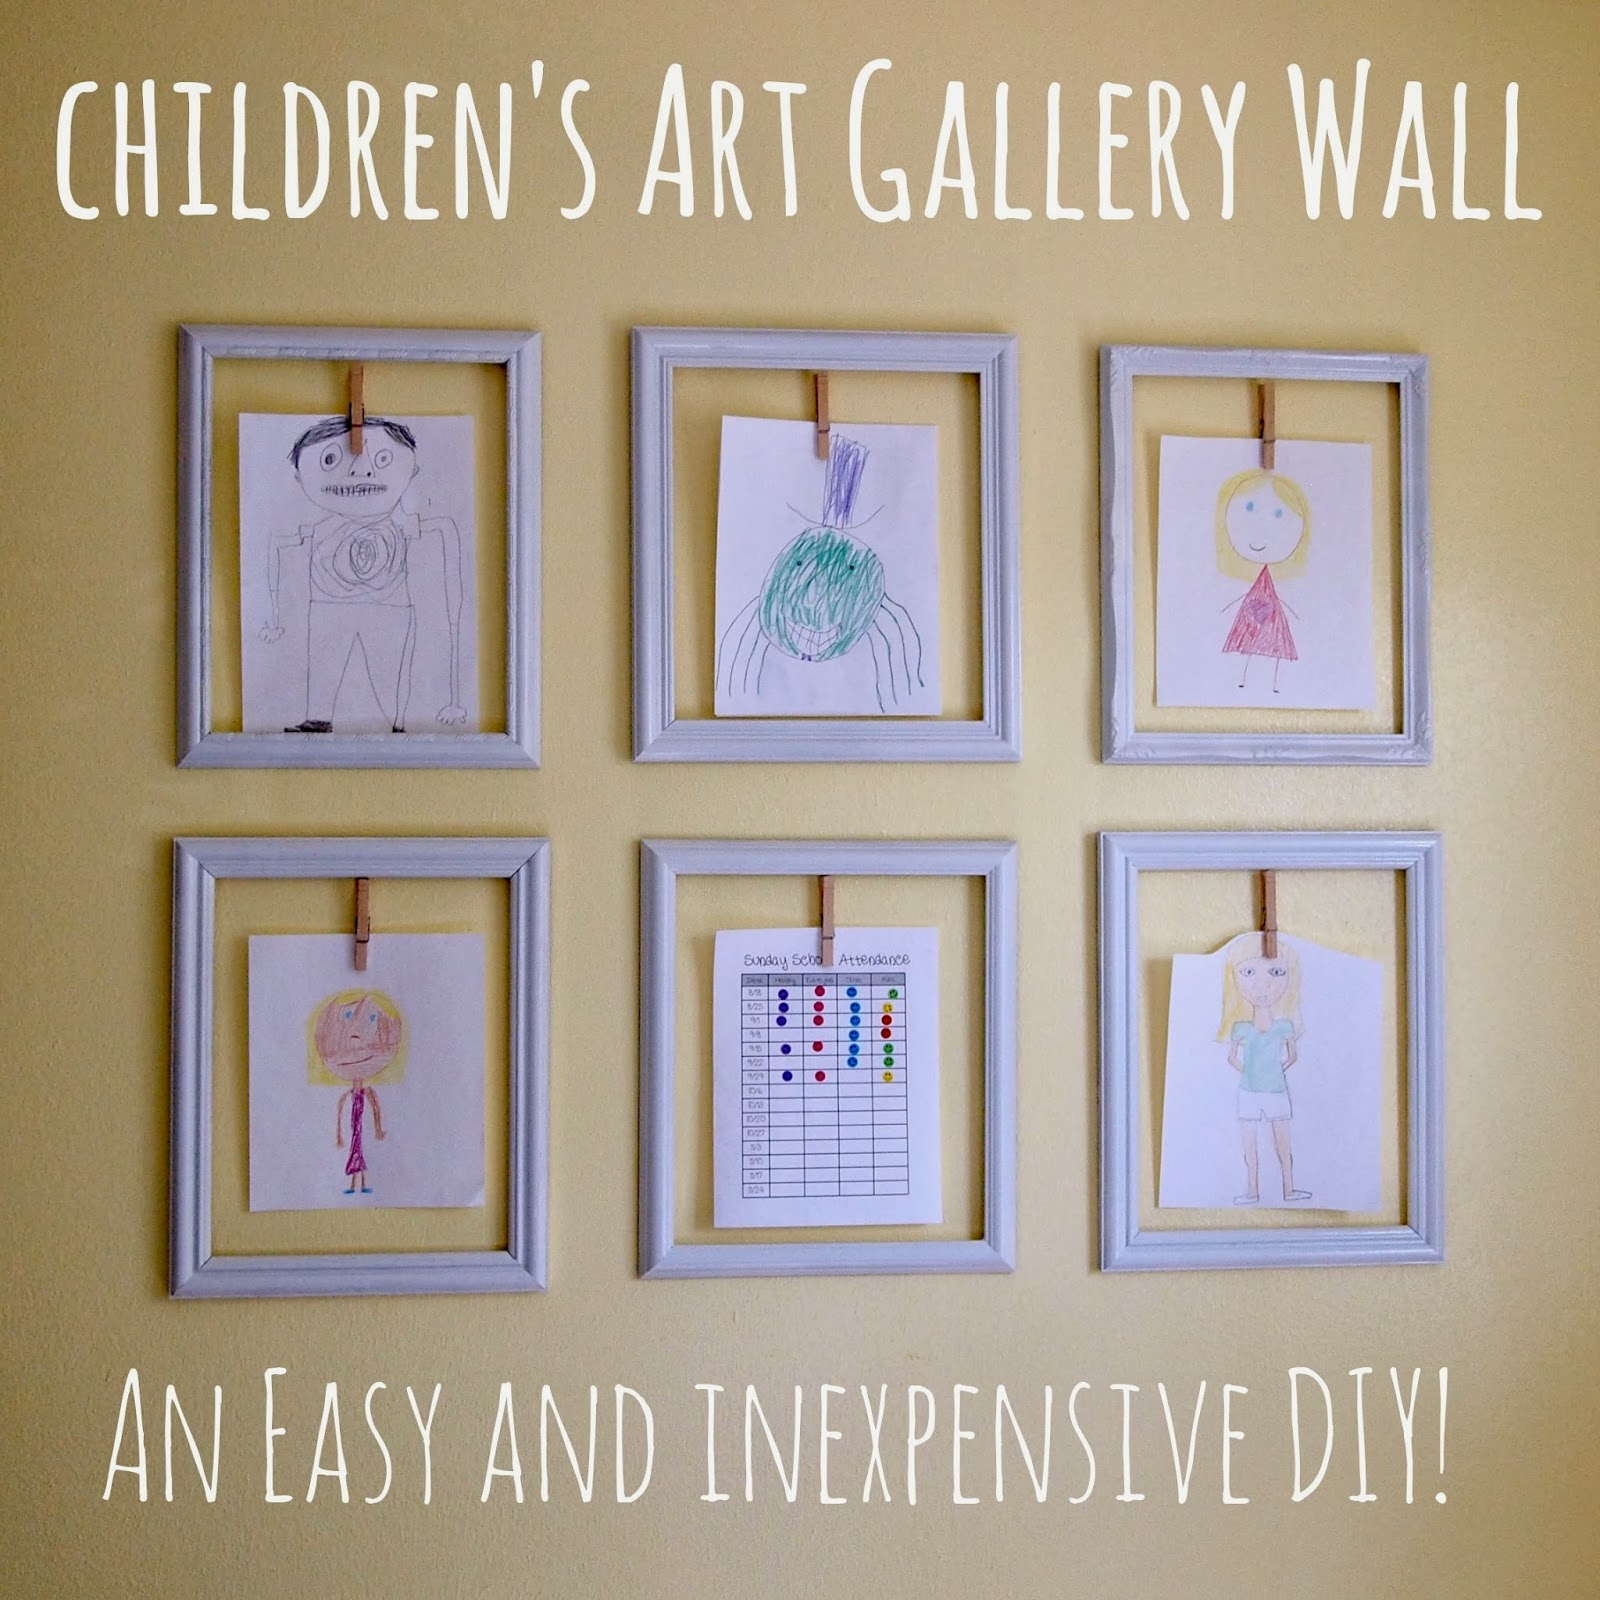 Cheap Frames From The Craft Store And Imagination: Cathey With An E: DIY Children's Art Gallery Wall